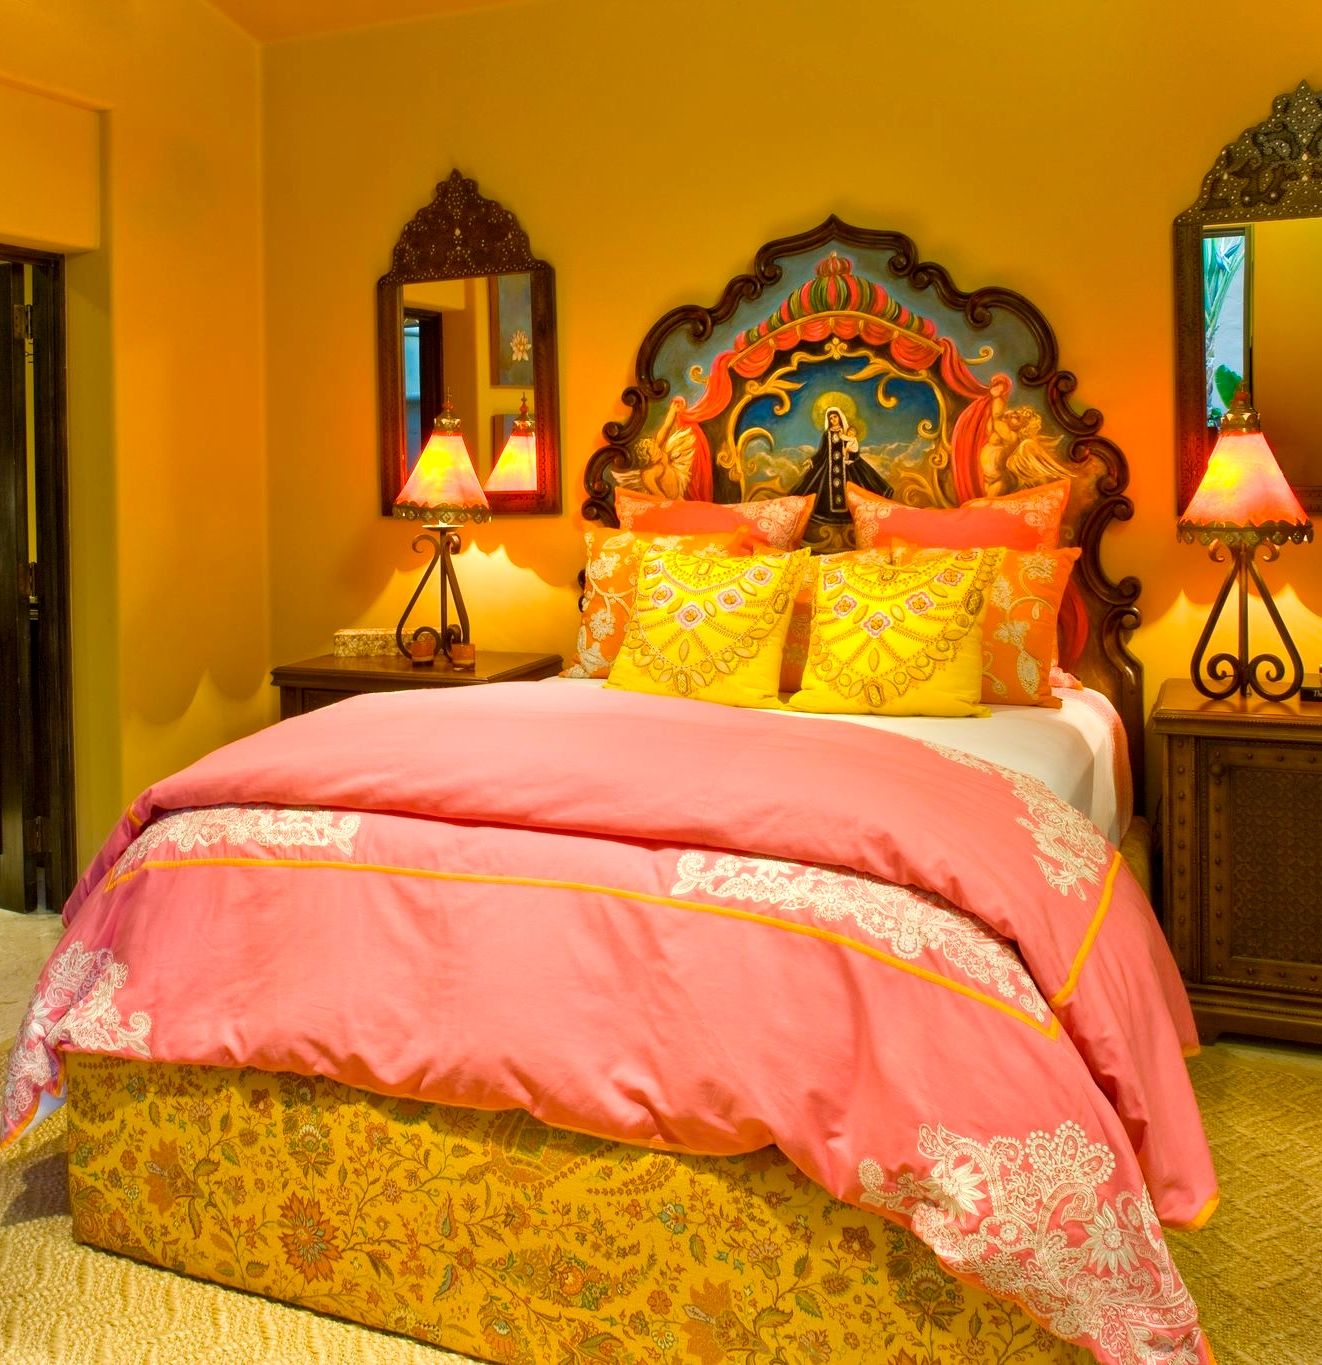 Mexican Home Decorations: Mexican Bedroom, Mexican Home Decor, Home